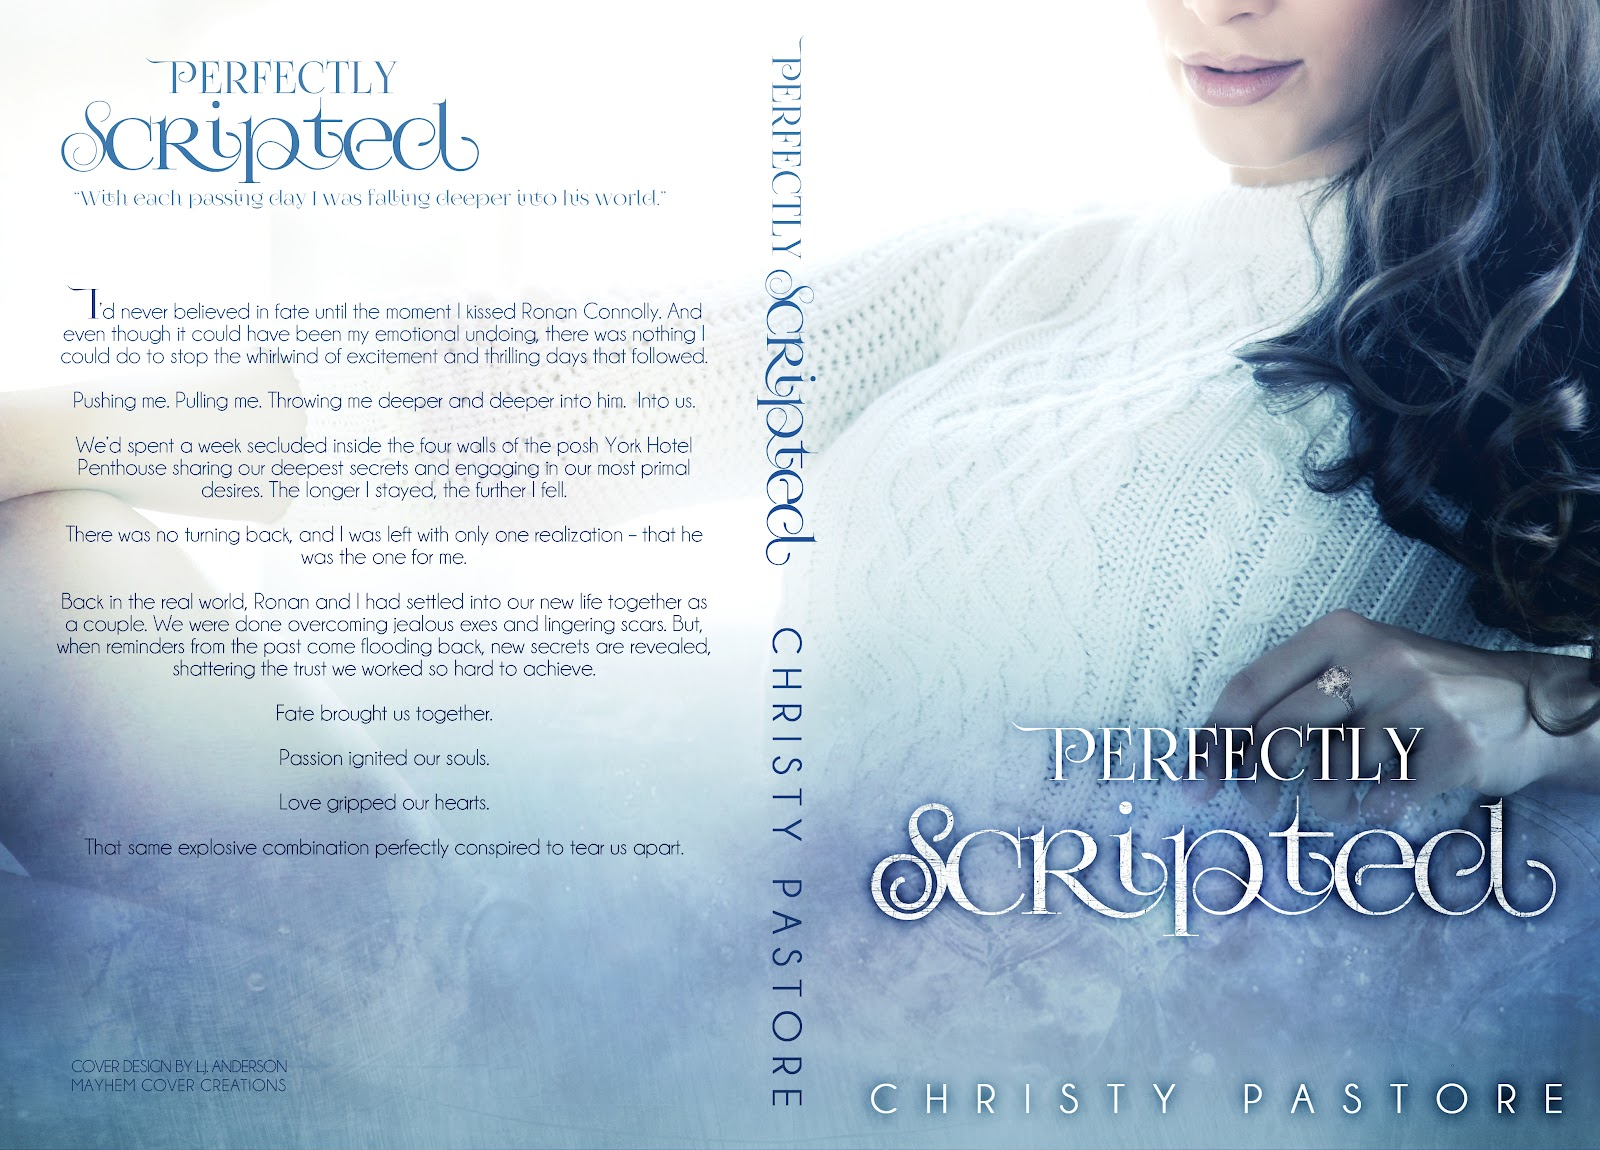 PerfectlyScripted_COVER FINAL.jpg